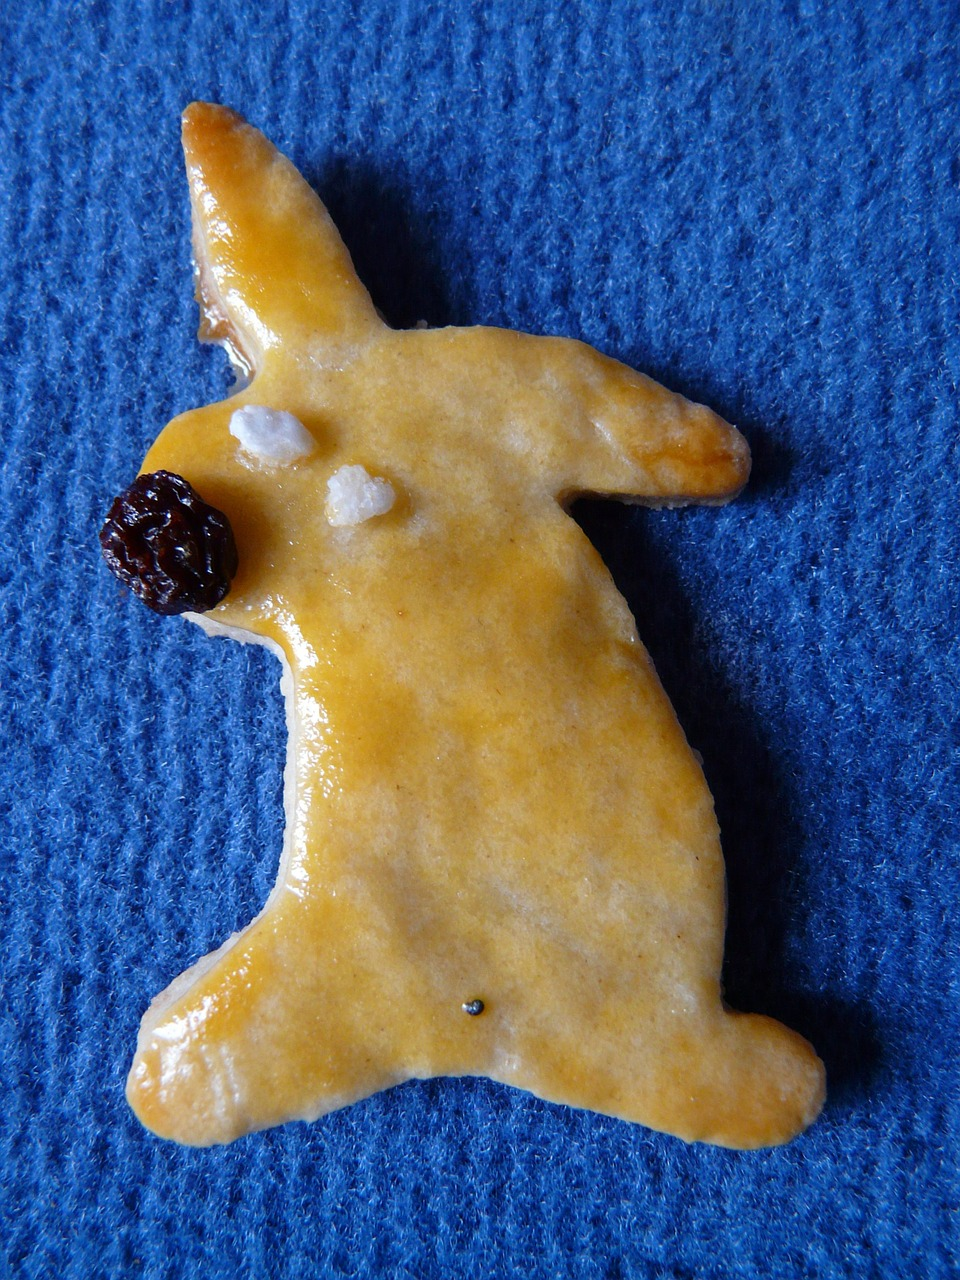 easter bunny,easter,easter cakes,hare,bake,dough,ausstecherle,recipe,oven,cookie,fine pastry,small cakes,biscuit,raisin,free pictures, free photos, free images, royalty free, free illustrations